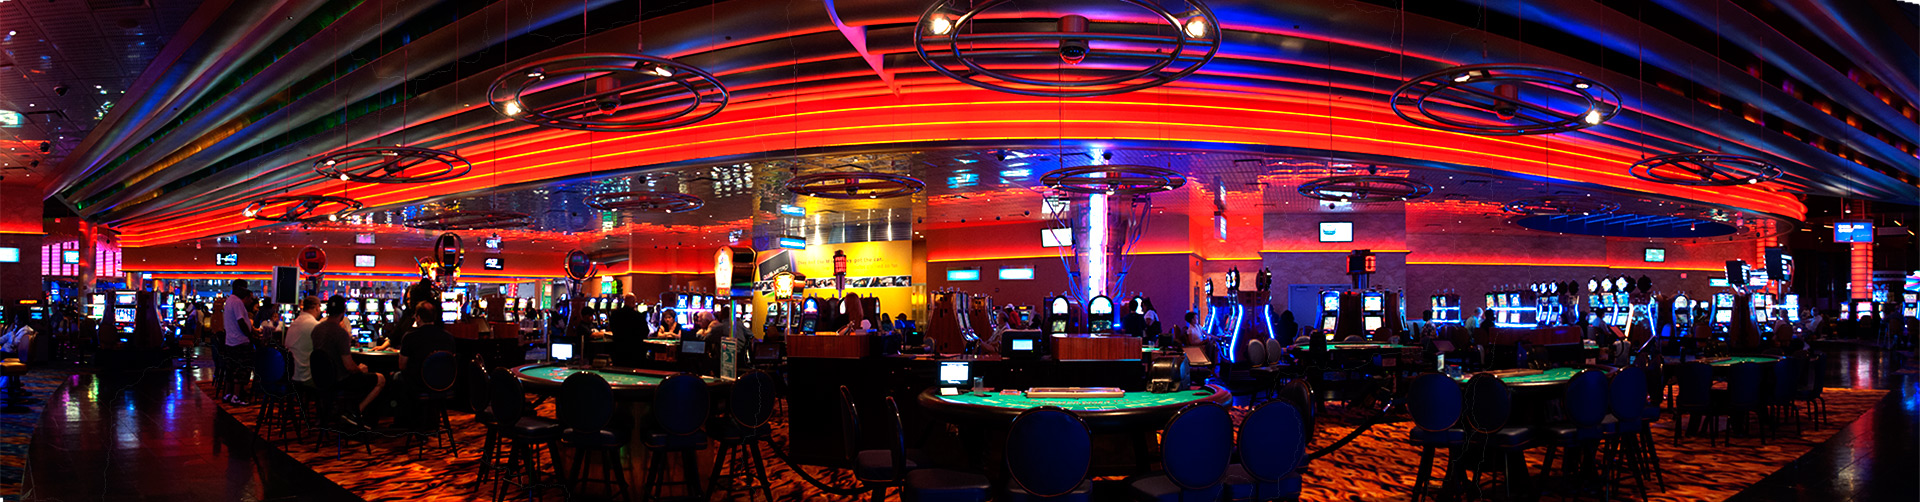 Motor city casino in detroit michigan archive casino entry mt pala tb this trackback trackback url